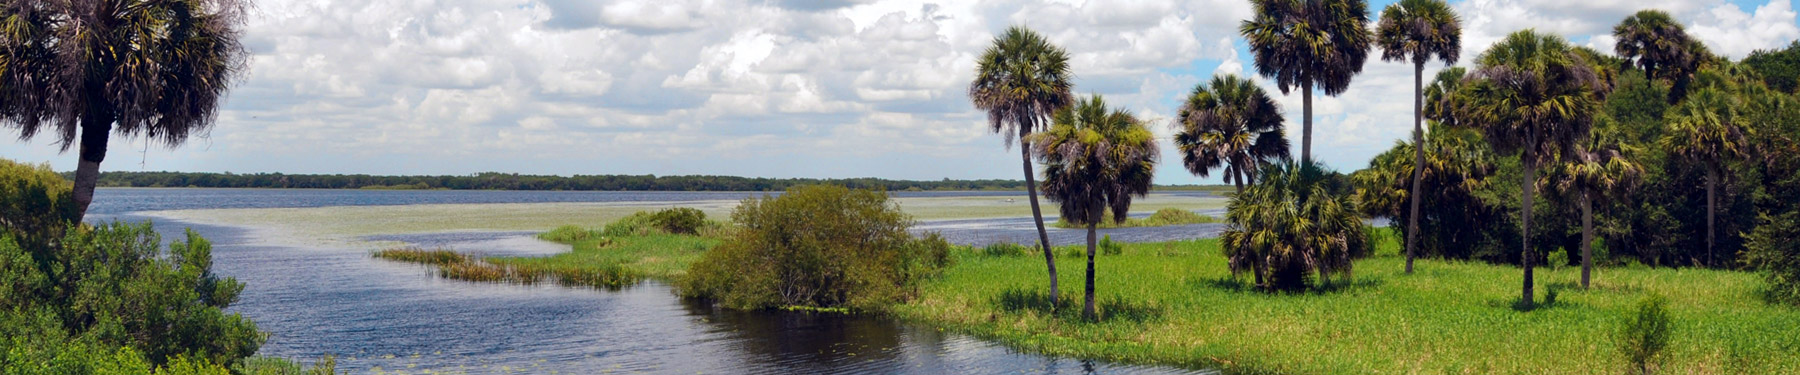 Marshes, swamps and palms in Nearby Myakka River State Park